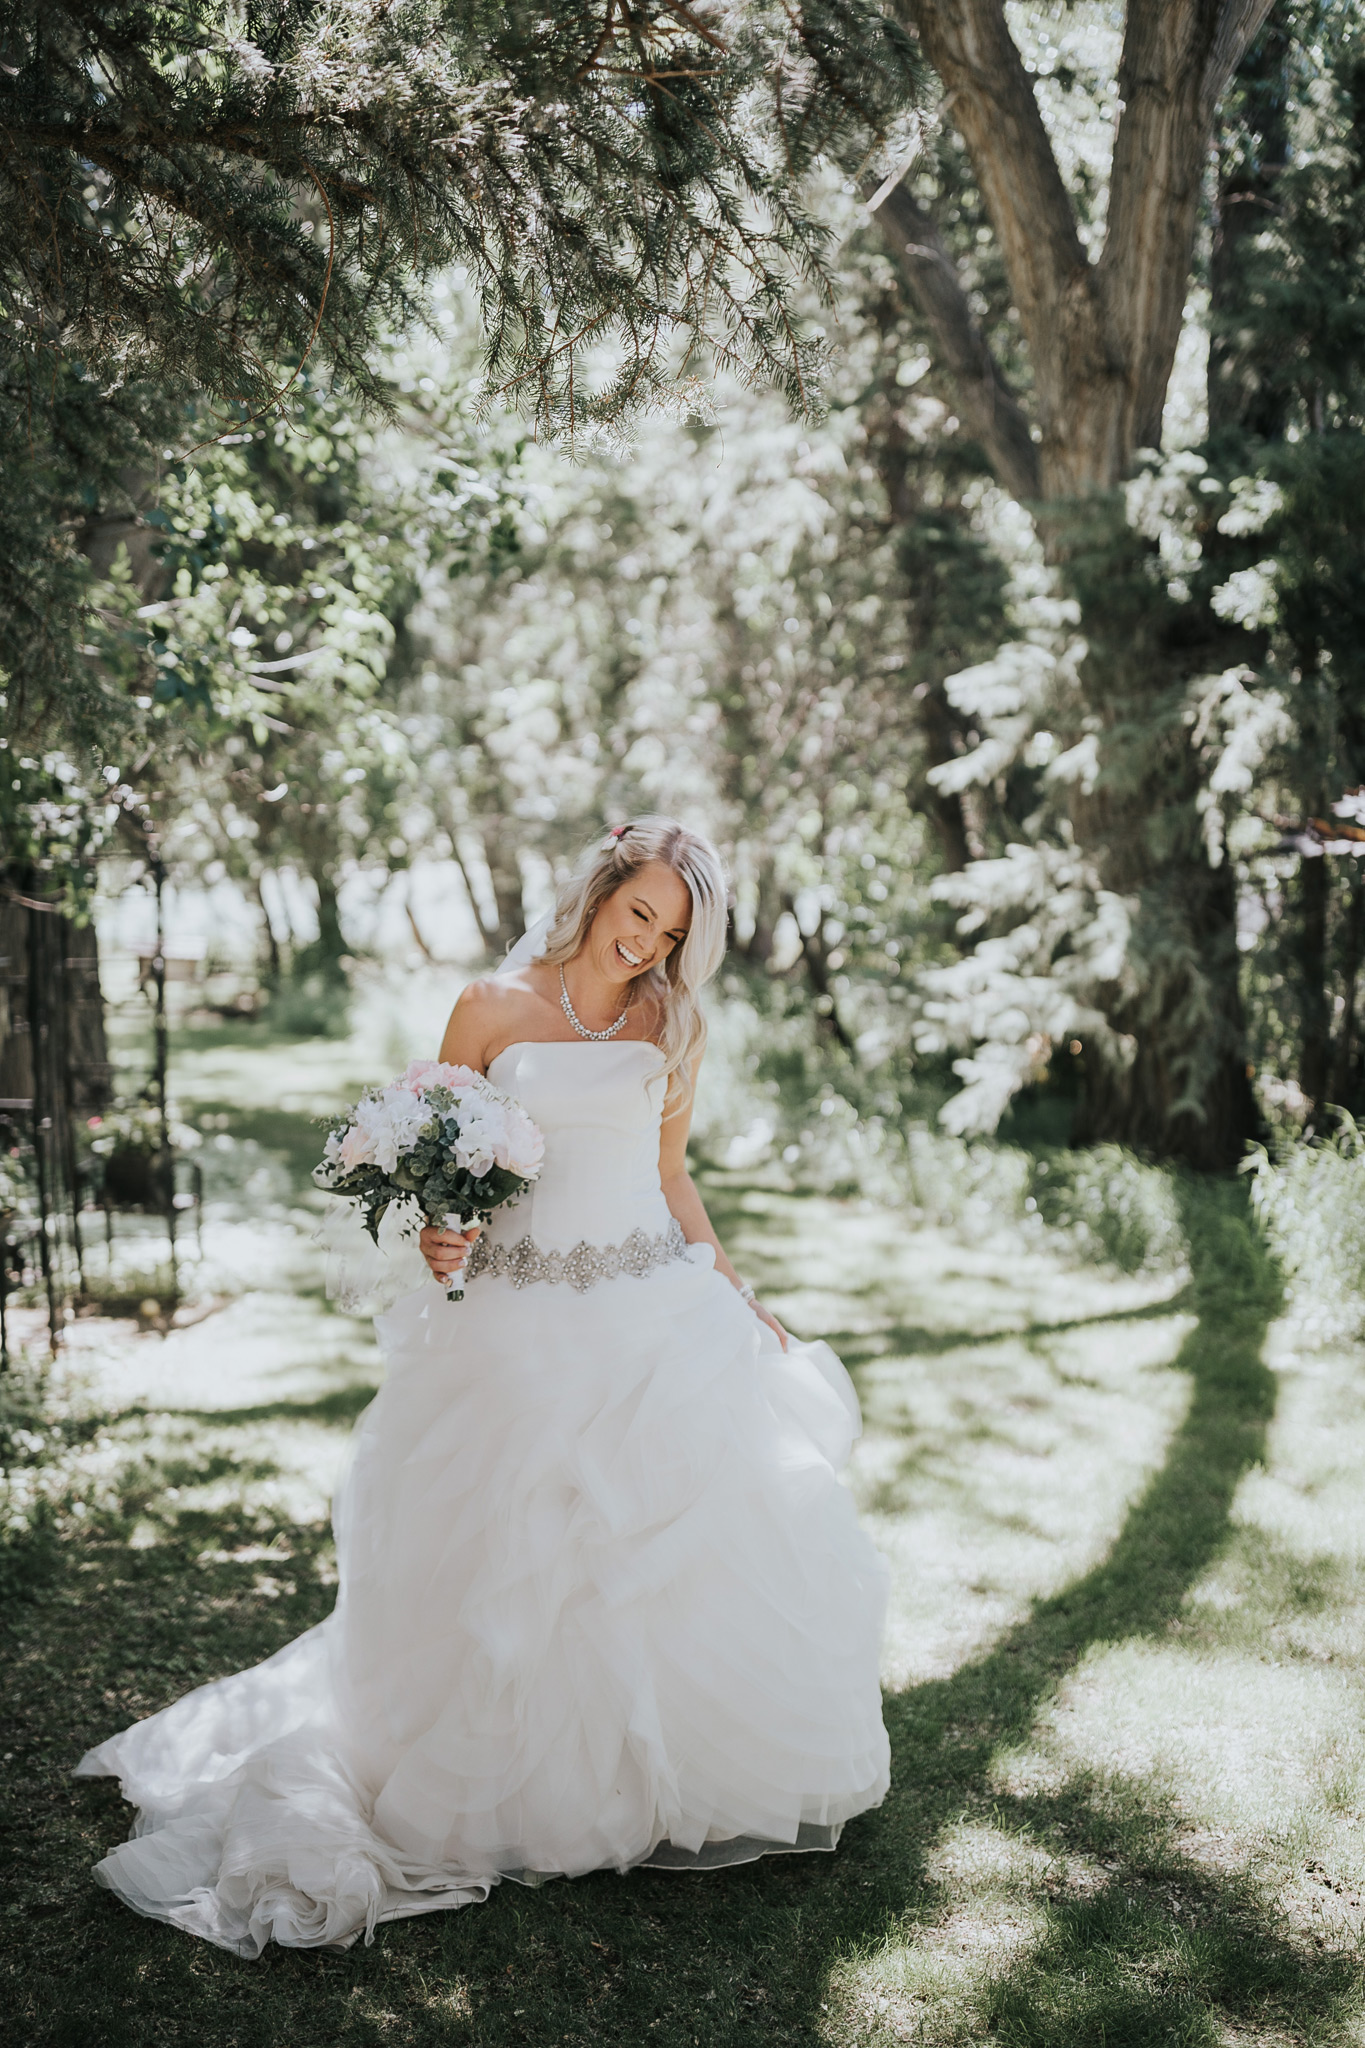 bride twirling in her wedding dress